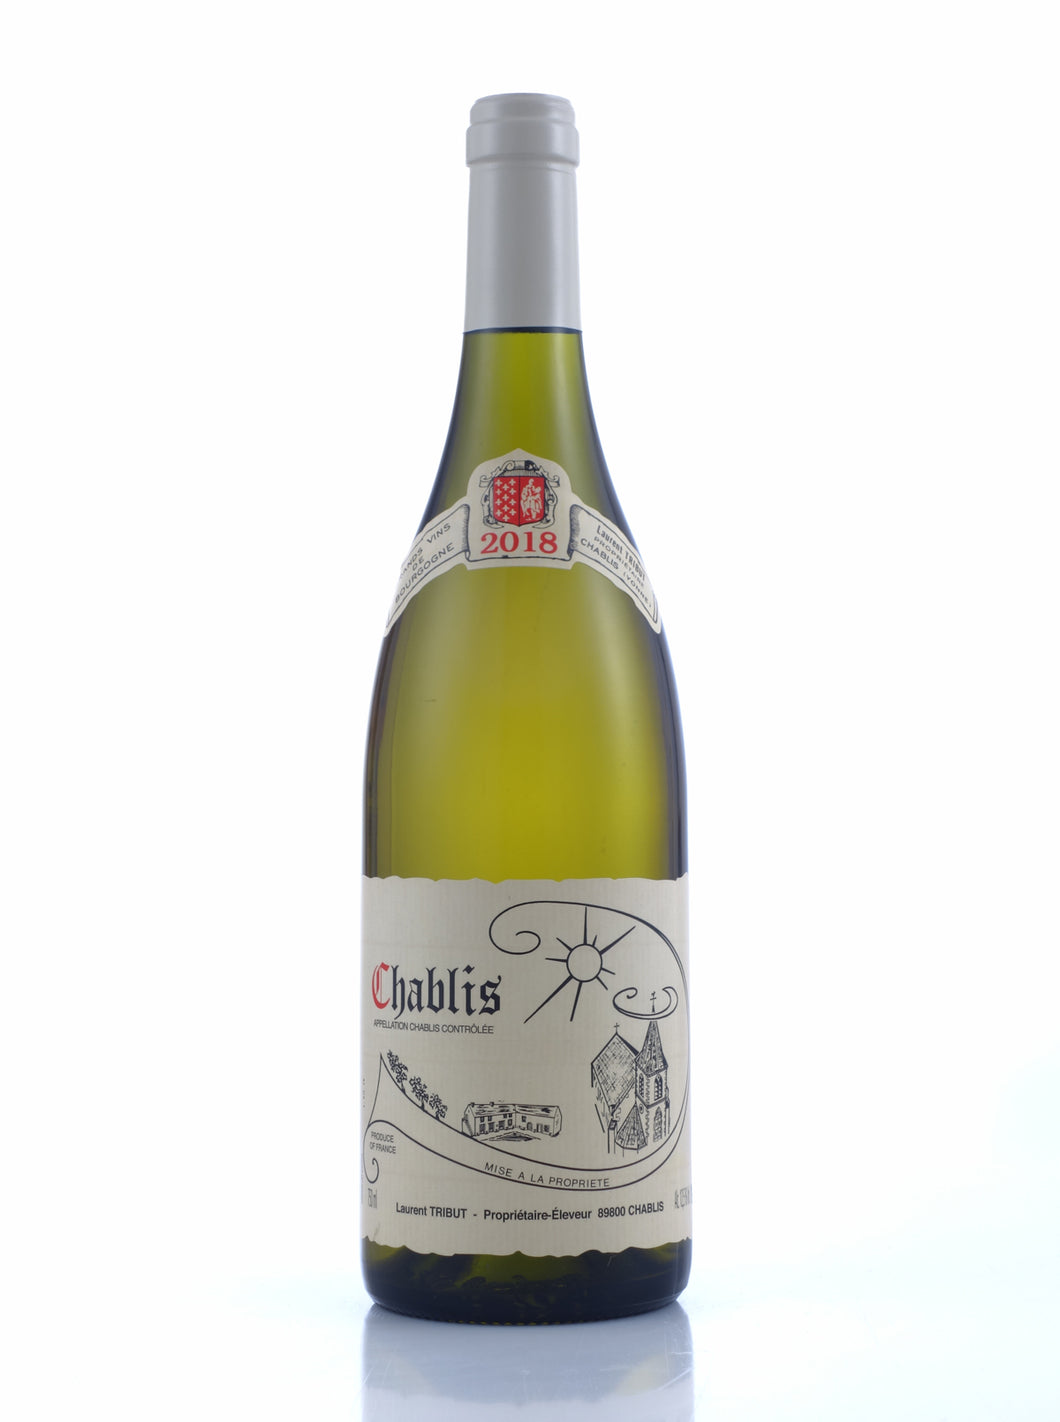 2018 Chablis, Laurent Tribut